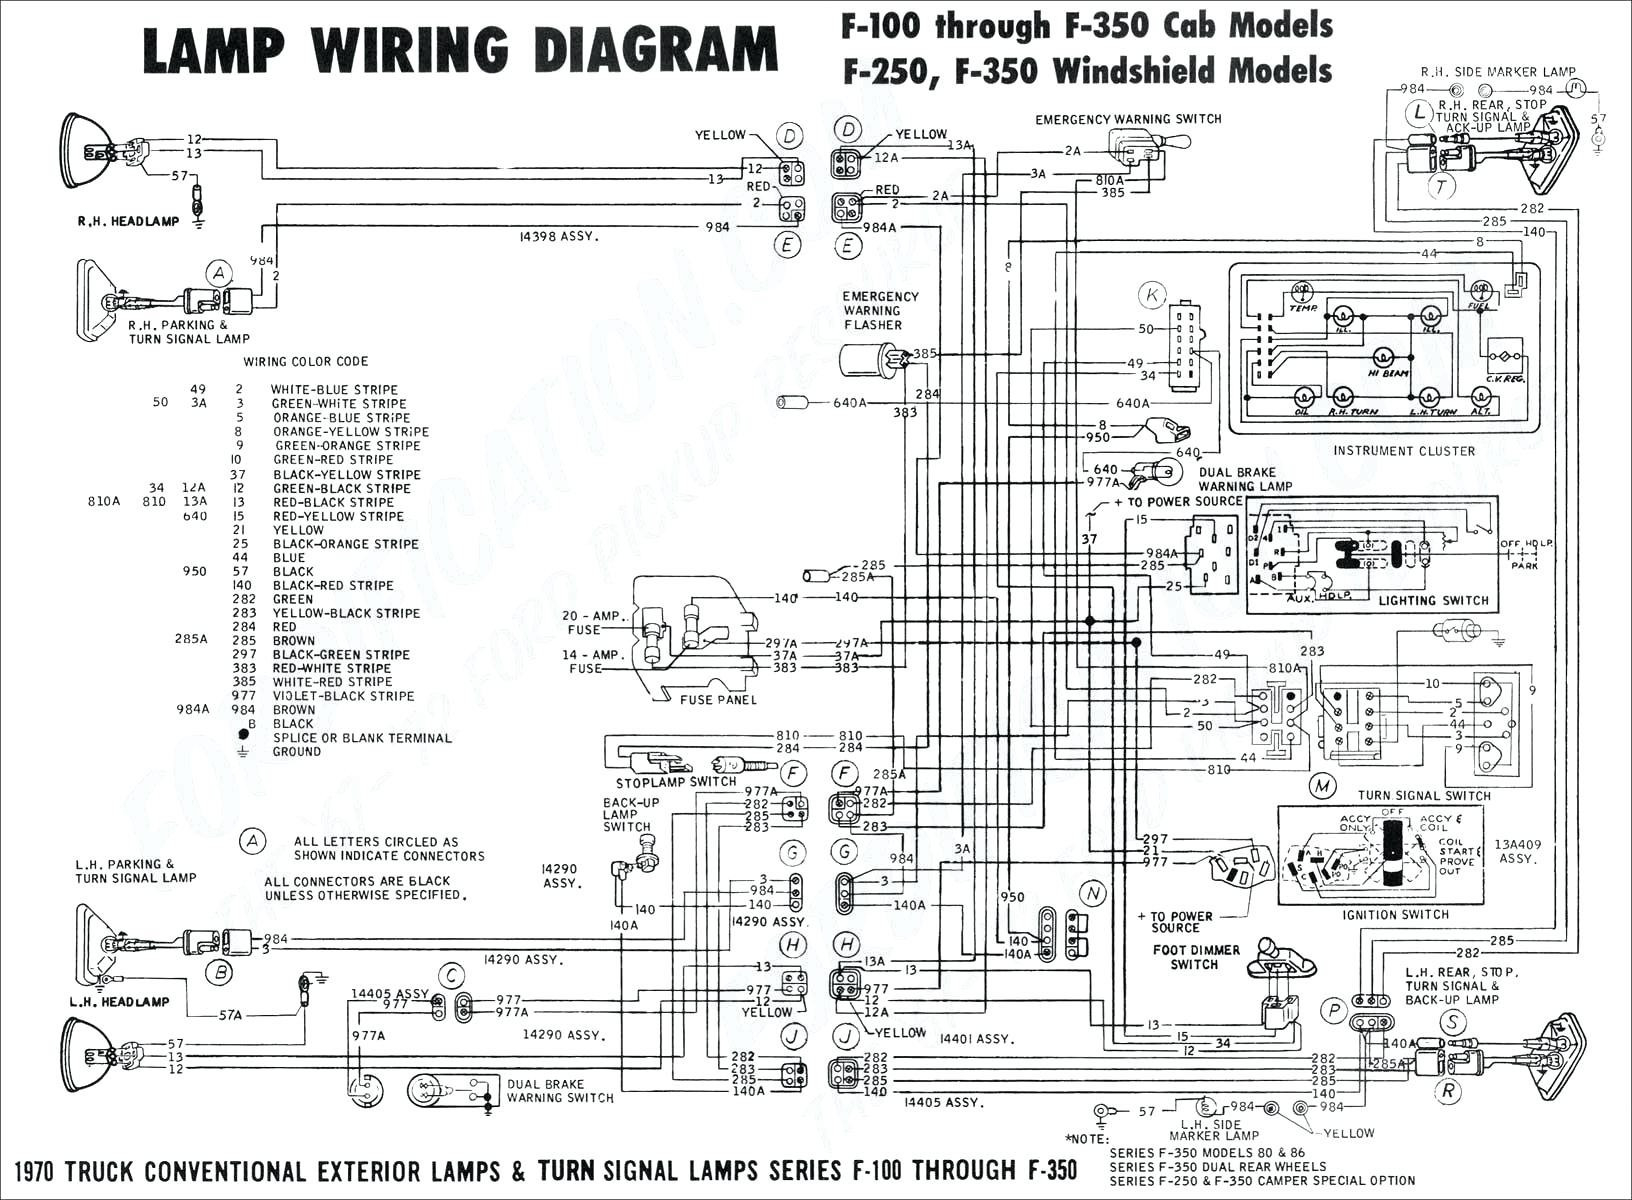 1996 f350 wiring diagram circuits symbols diagrams u2022 rh amdrums co uk  1996 ford ranger turn signal wiring diagram